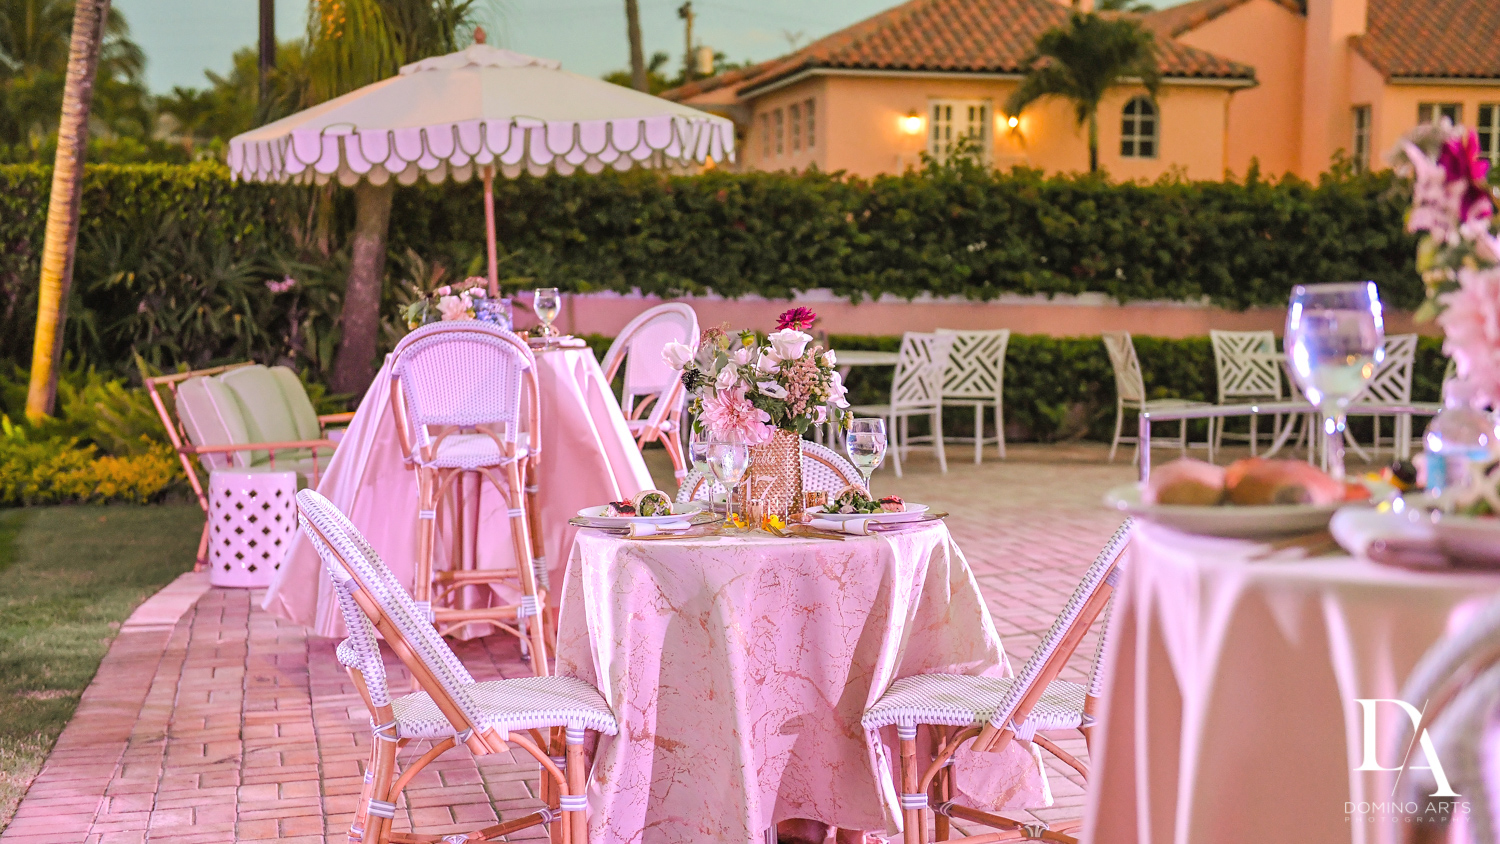 pastel outdoors decor at Luxury Summer Wedding at The Colony Hotel Palm Beach by Domino Arts Photography